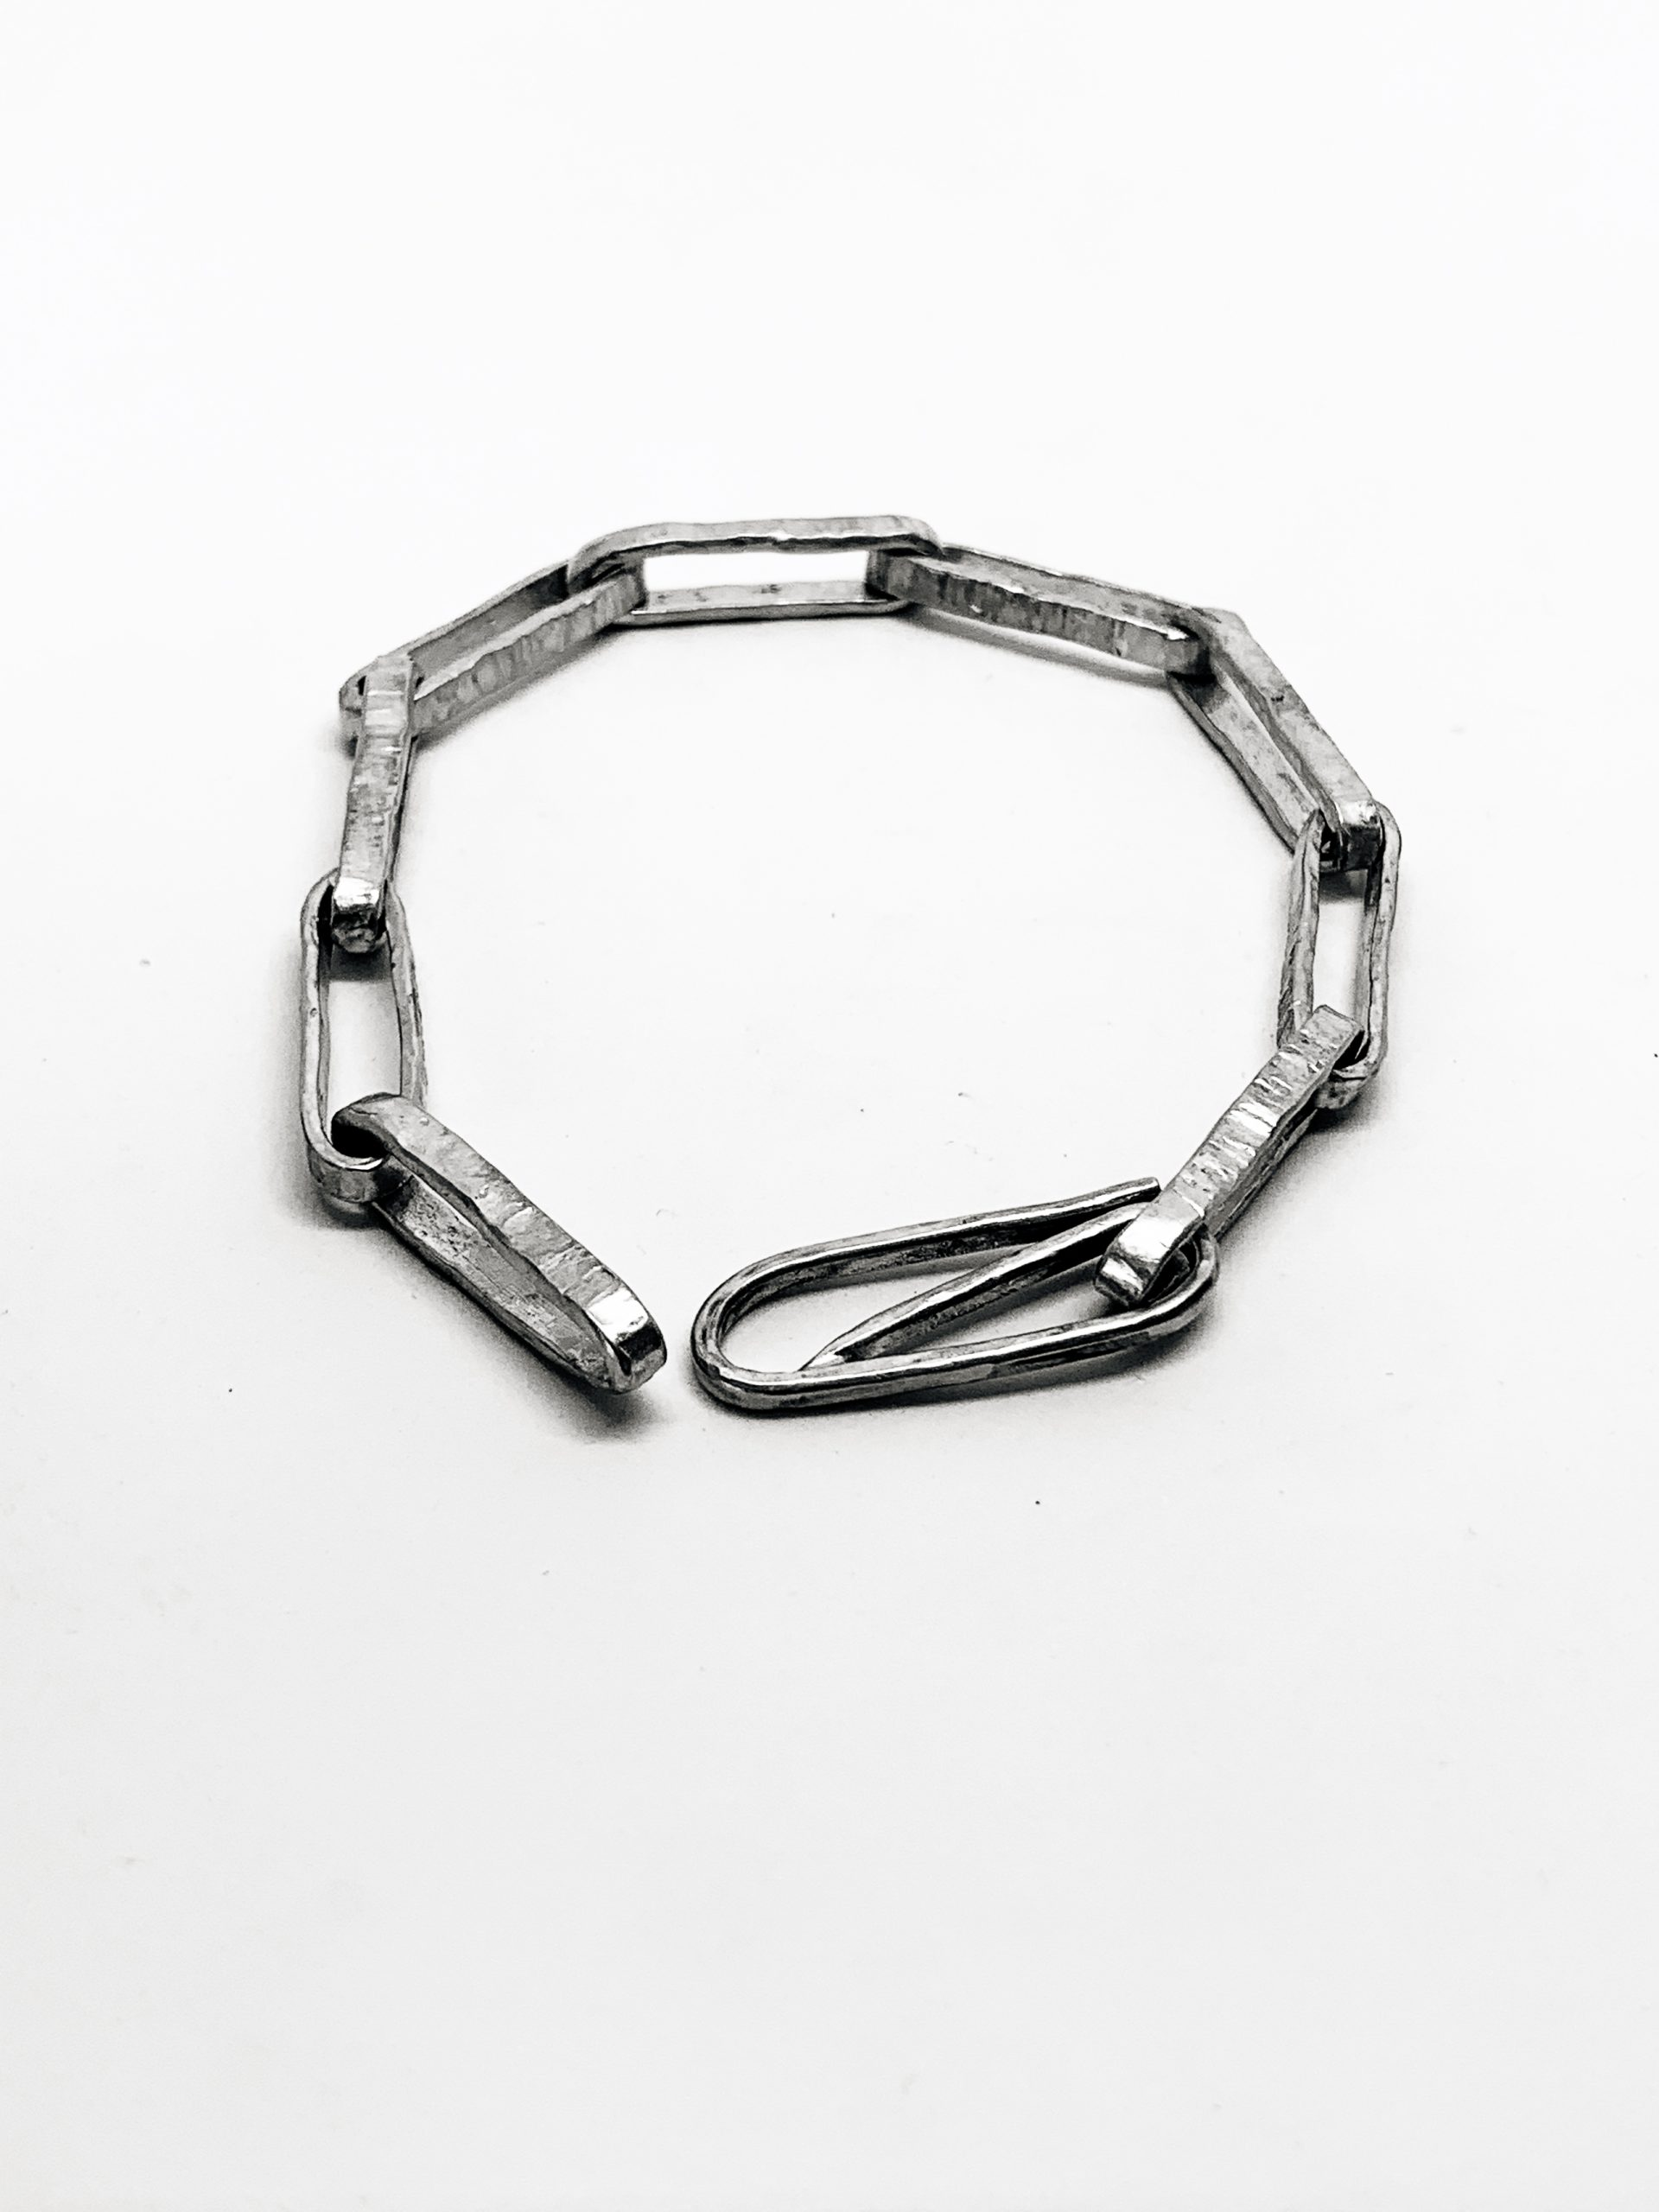 Chain Reaction – Narrow Oval Chain Bracelet in Sterling Silver